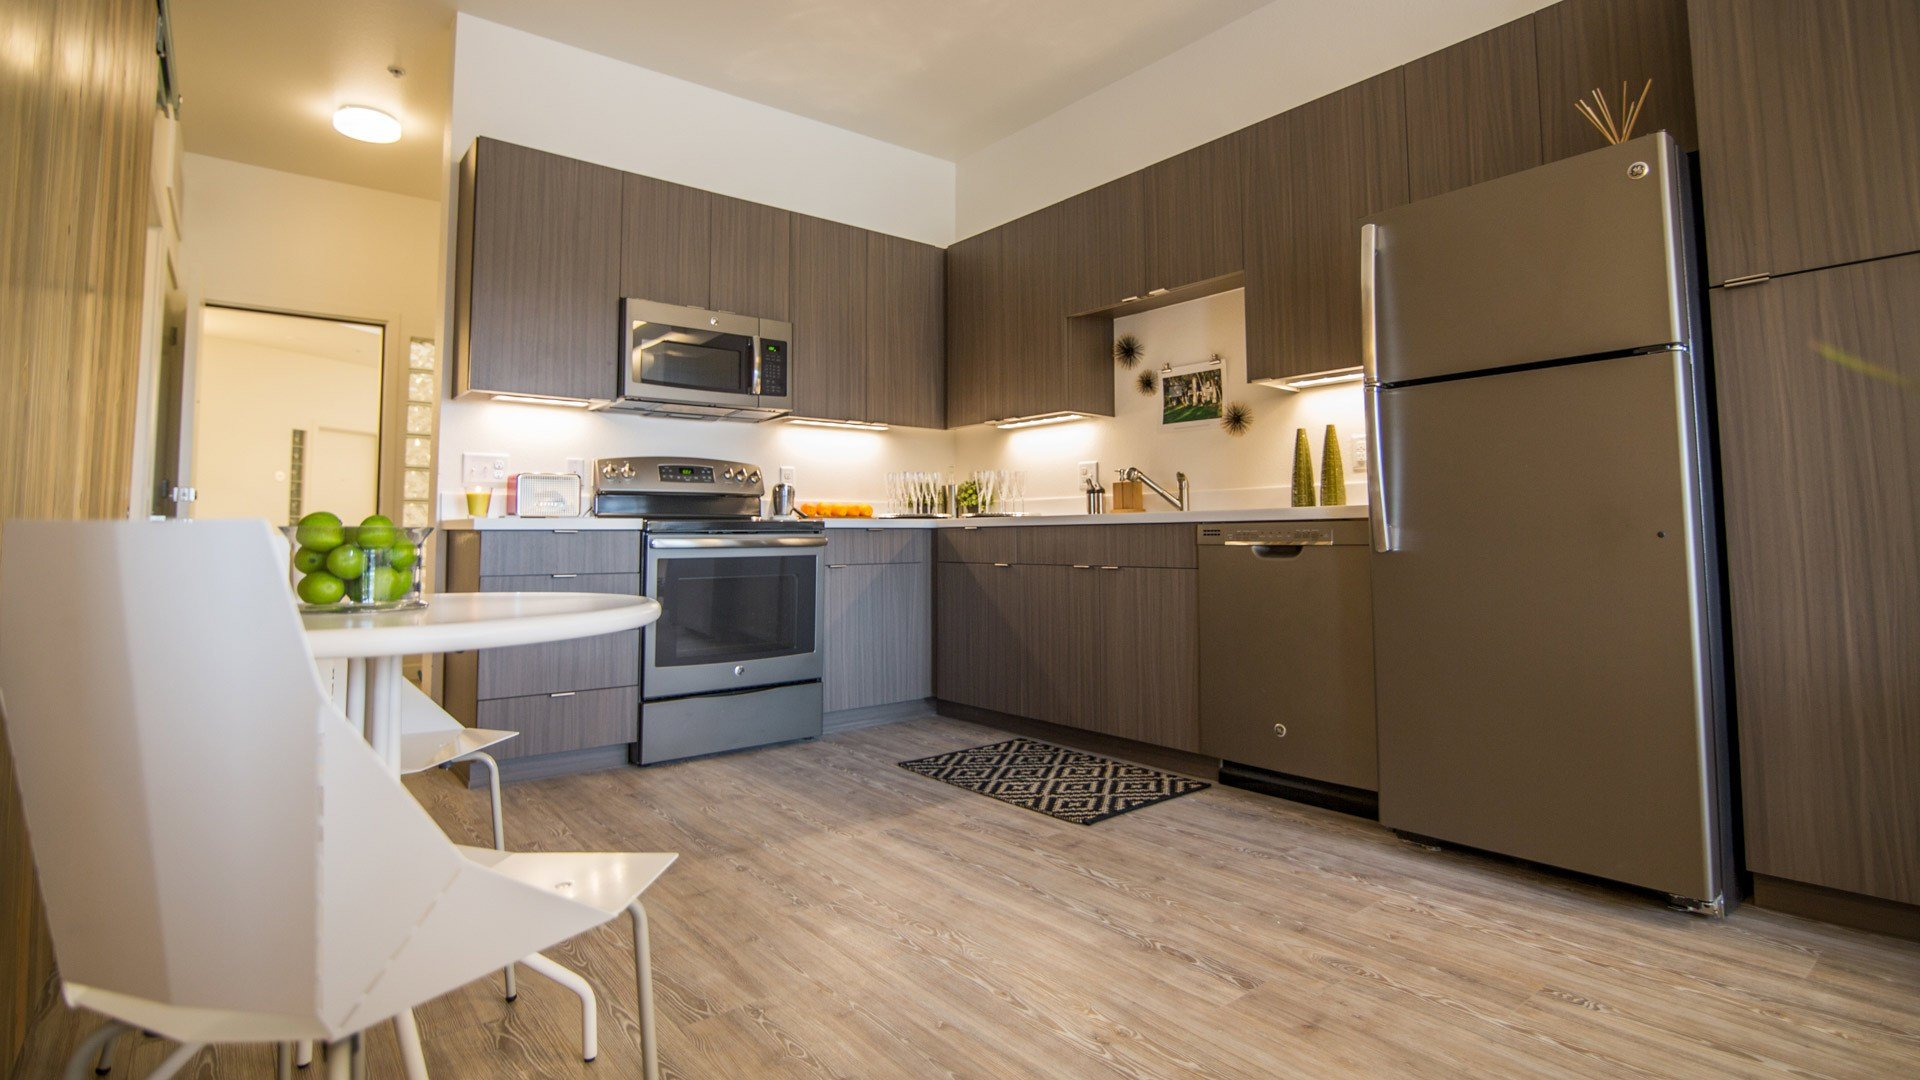 Best 2 Bedroom Apartments In Denver Houses For Rent Under 1000 With Pictures